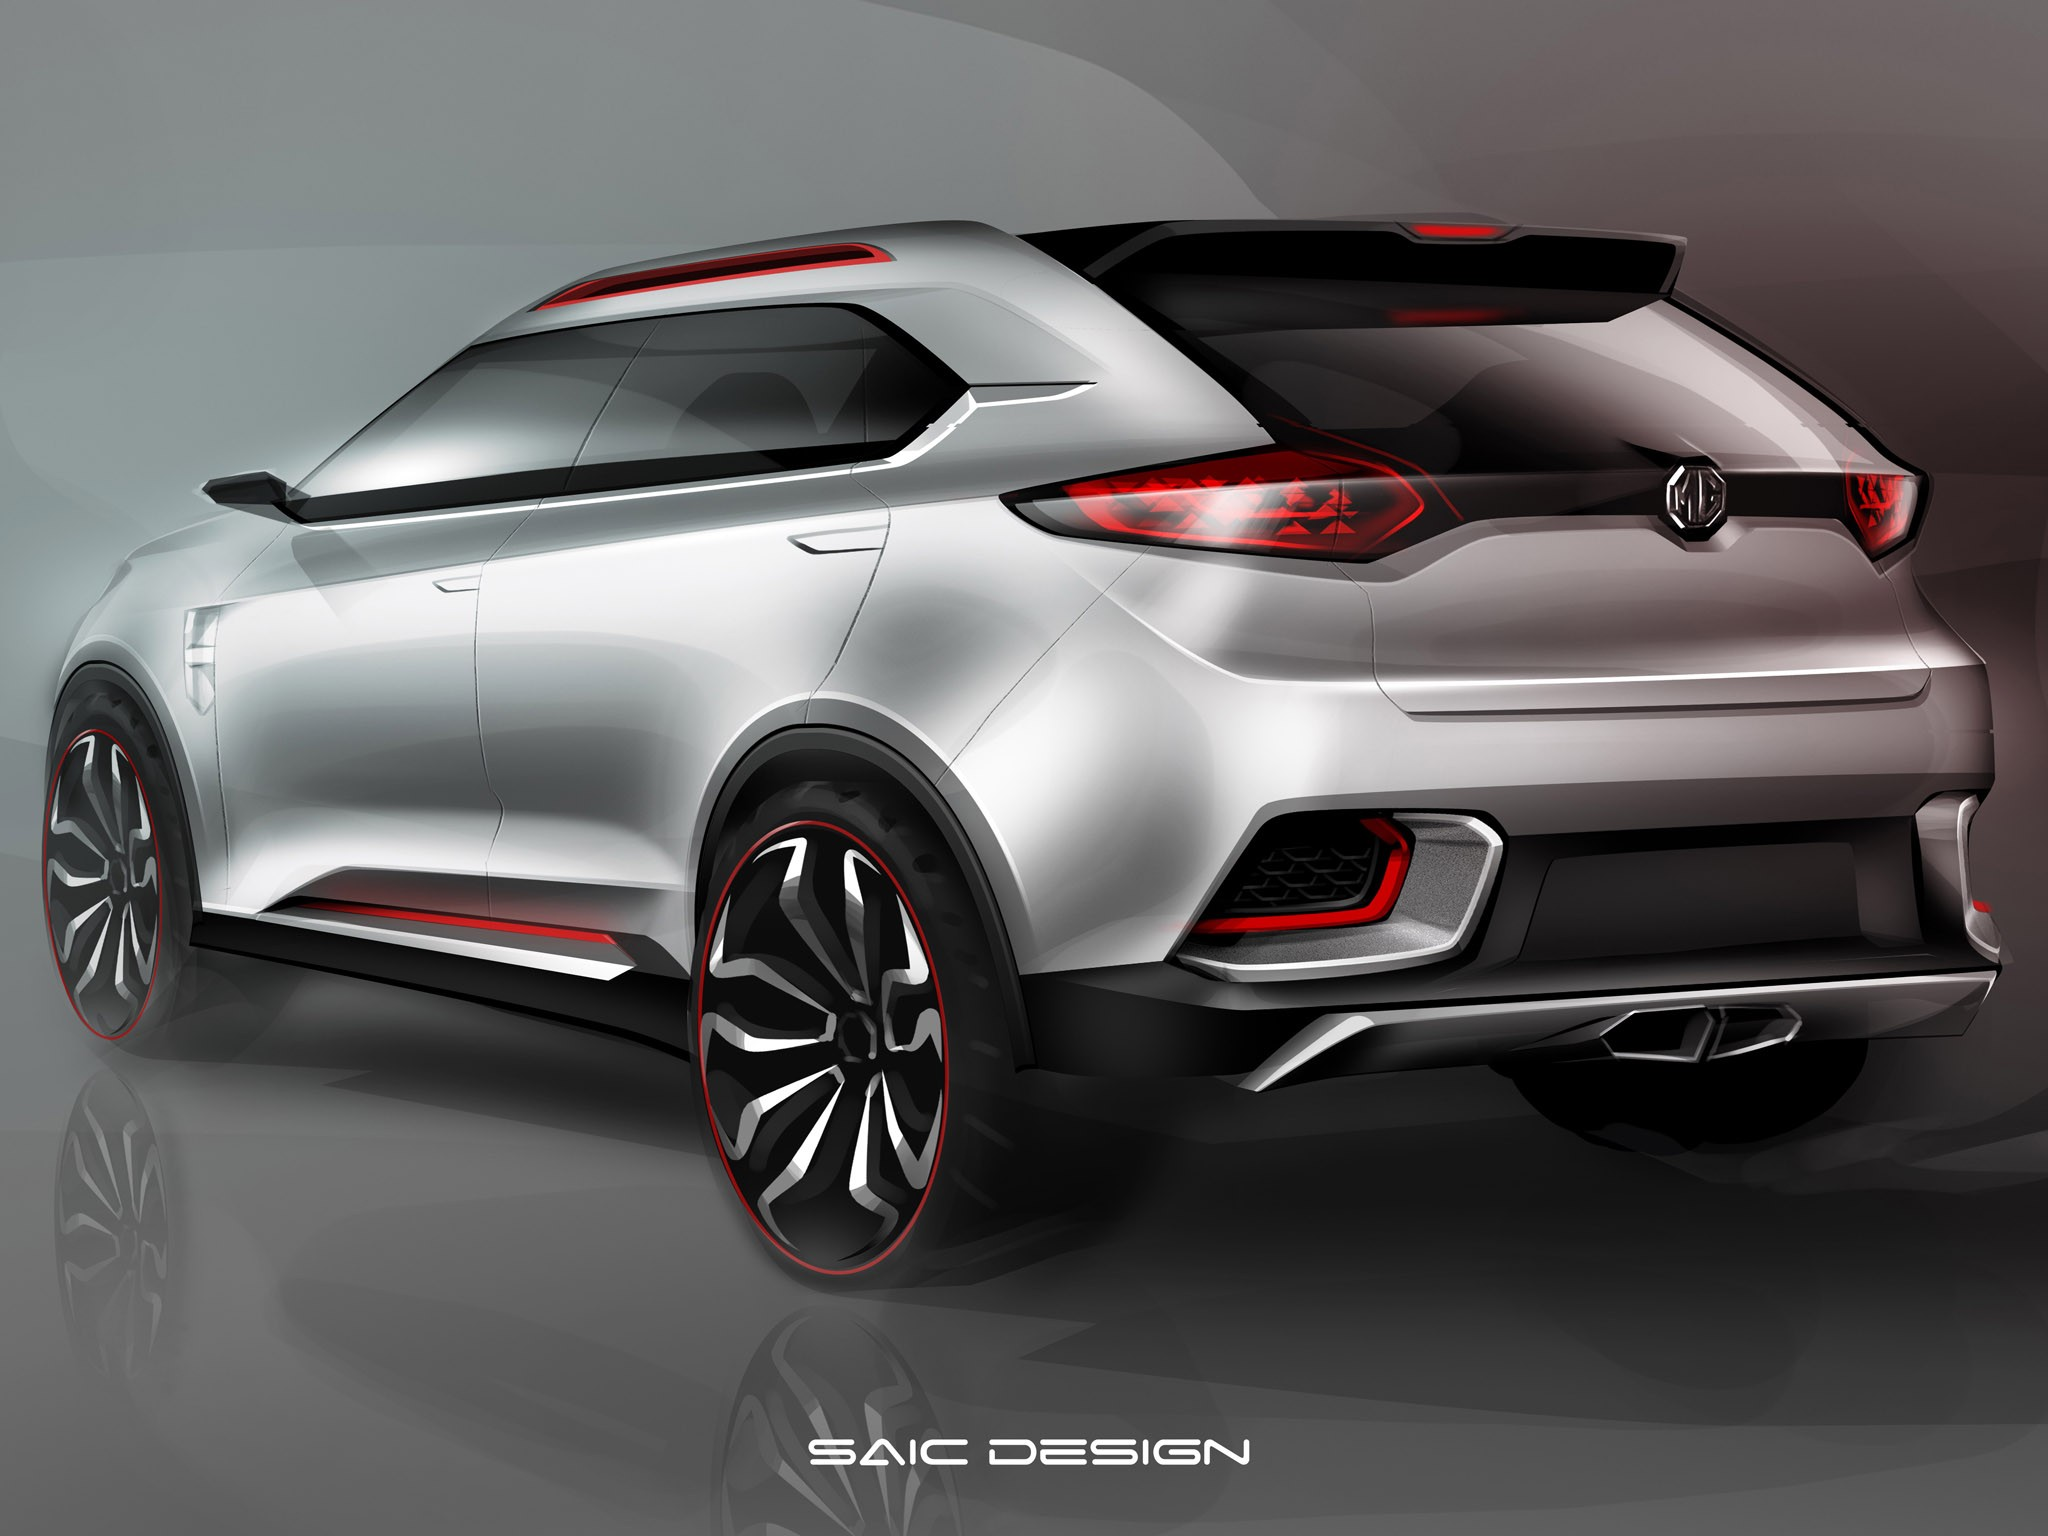 2013 MG CS Urban suv Concept